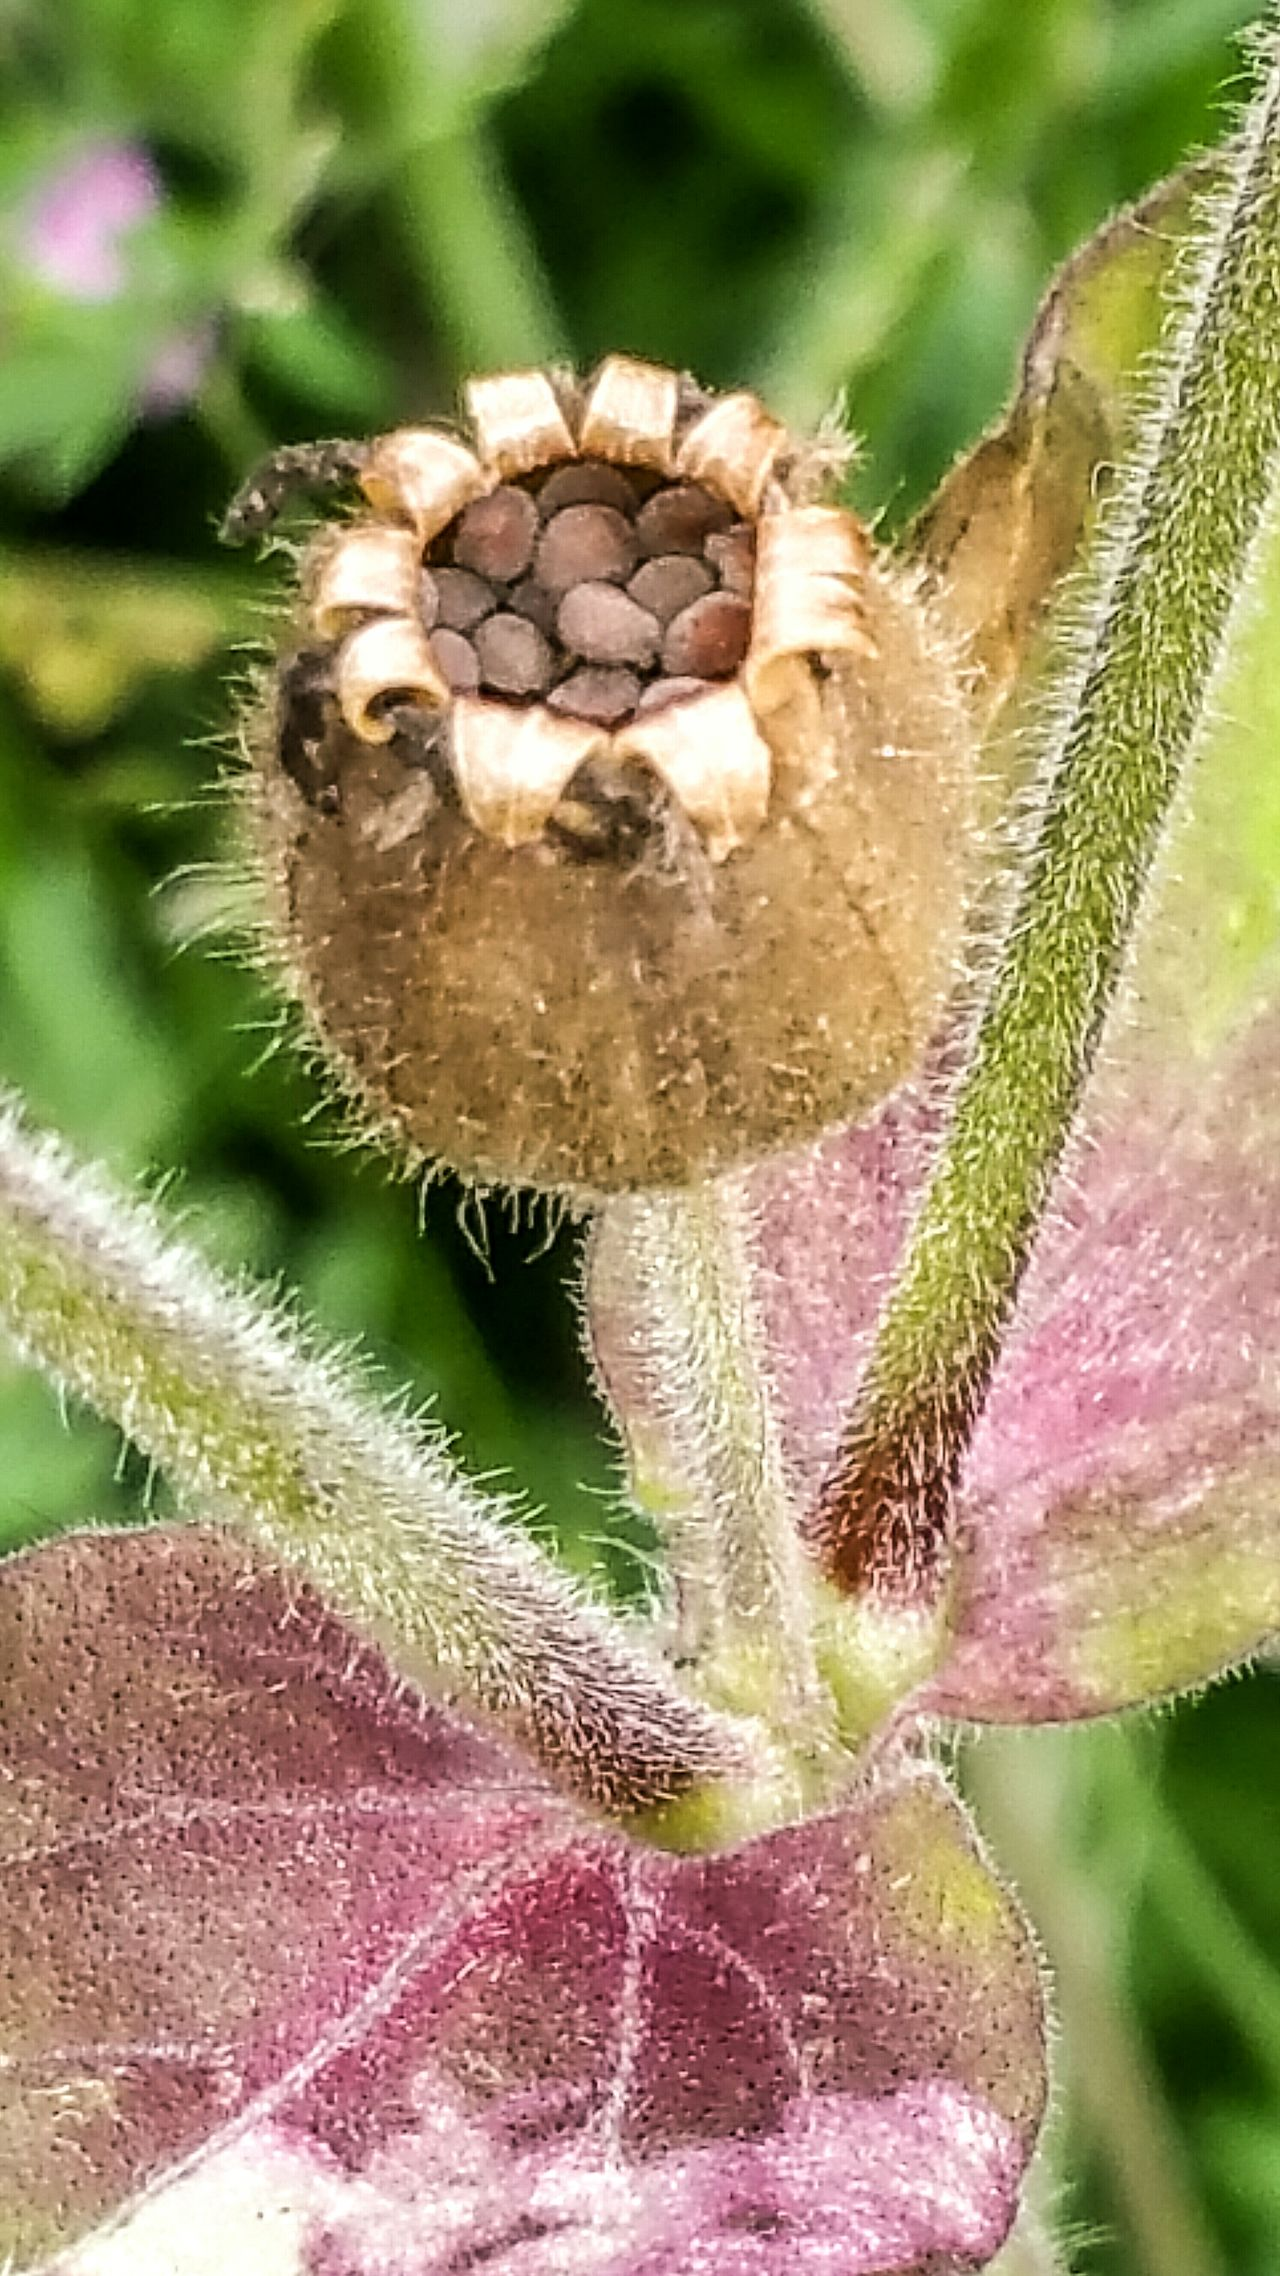 Hollingworth Lake EyeEm Best Shots - Nature EyeEm Flower Plant EyeEm Nature Lover Walking Around Milnrow Seed Pod